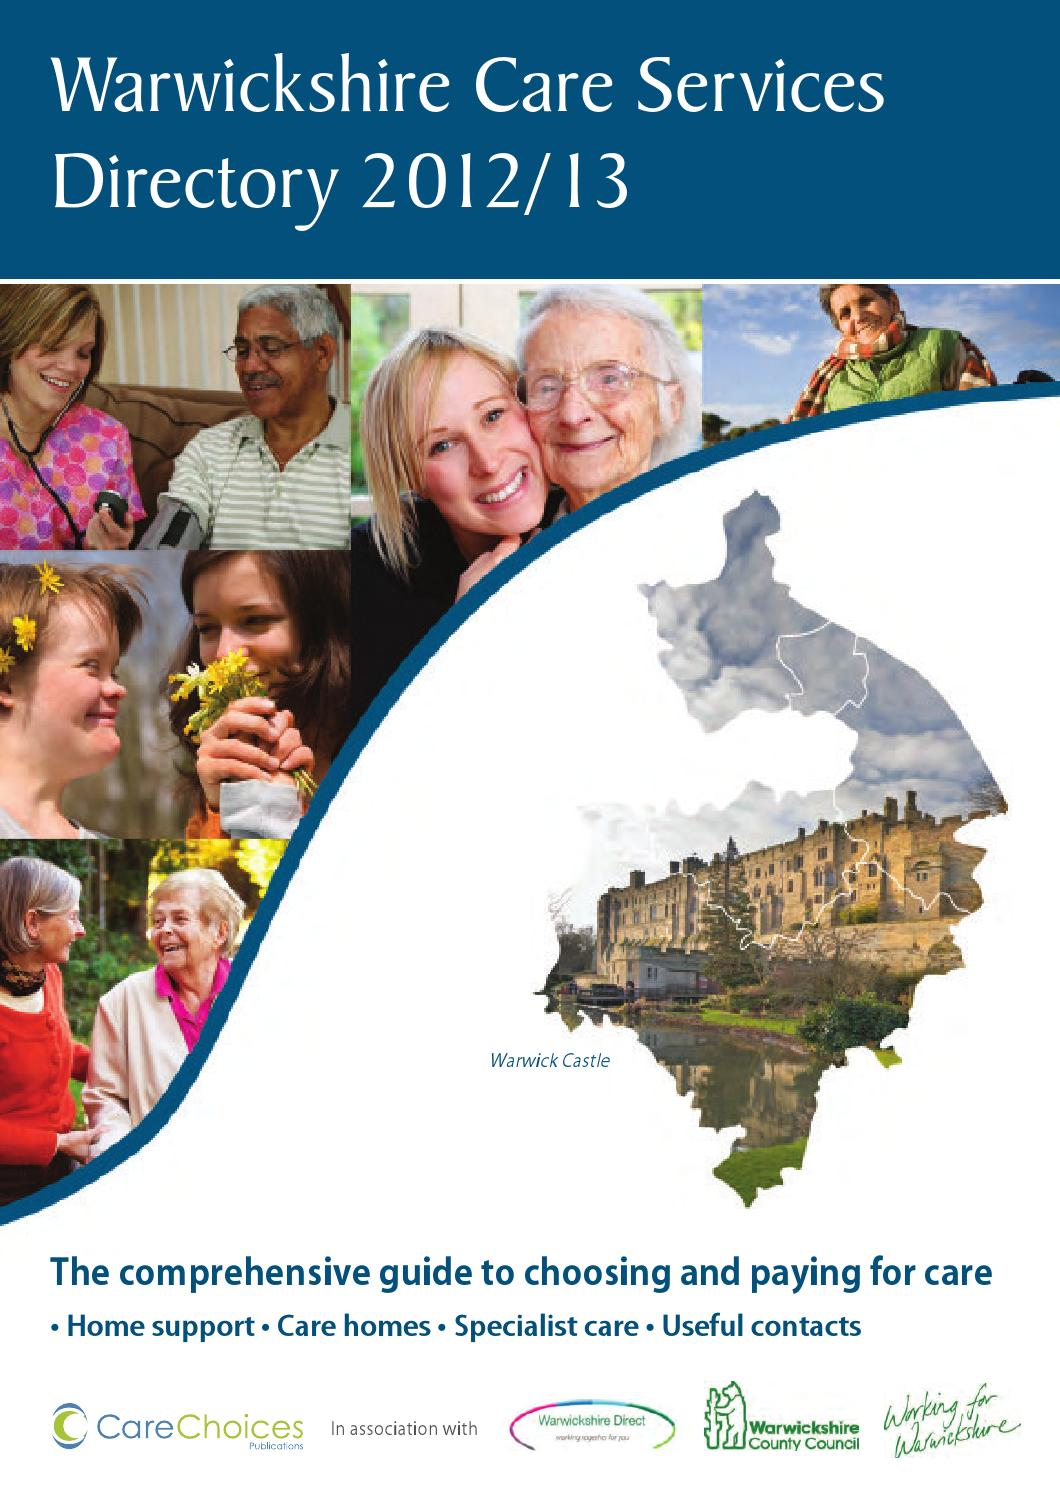 Lower meadow is a 40 capacity stratford care home that looks to take a - Warwickshire Care Services Directory 2012 13 By Care Choices Ltd Issuu